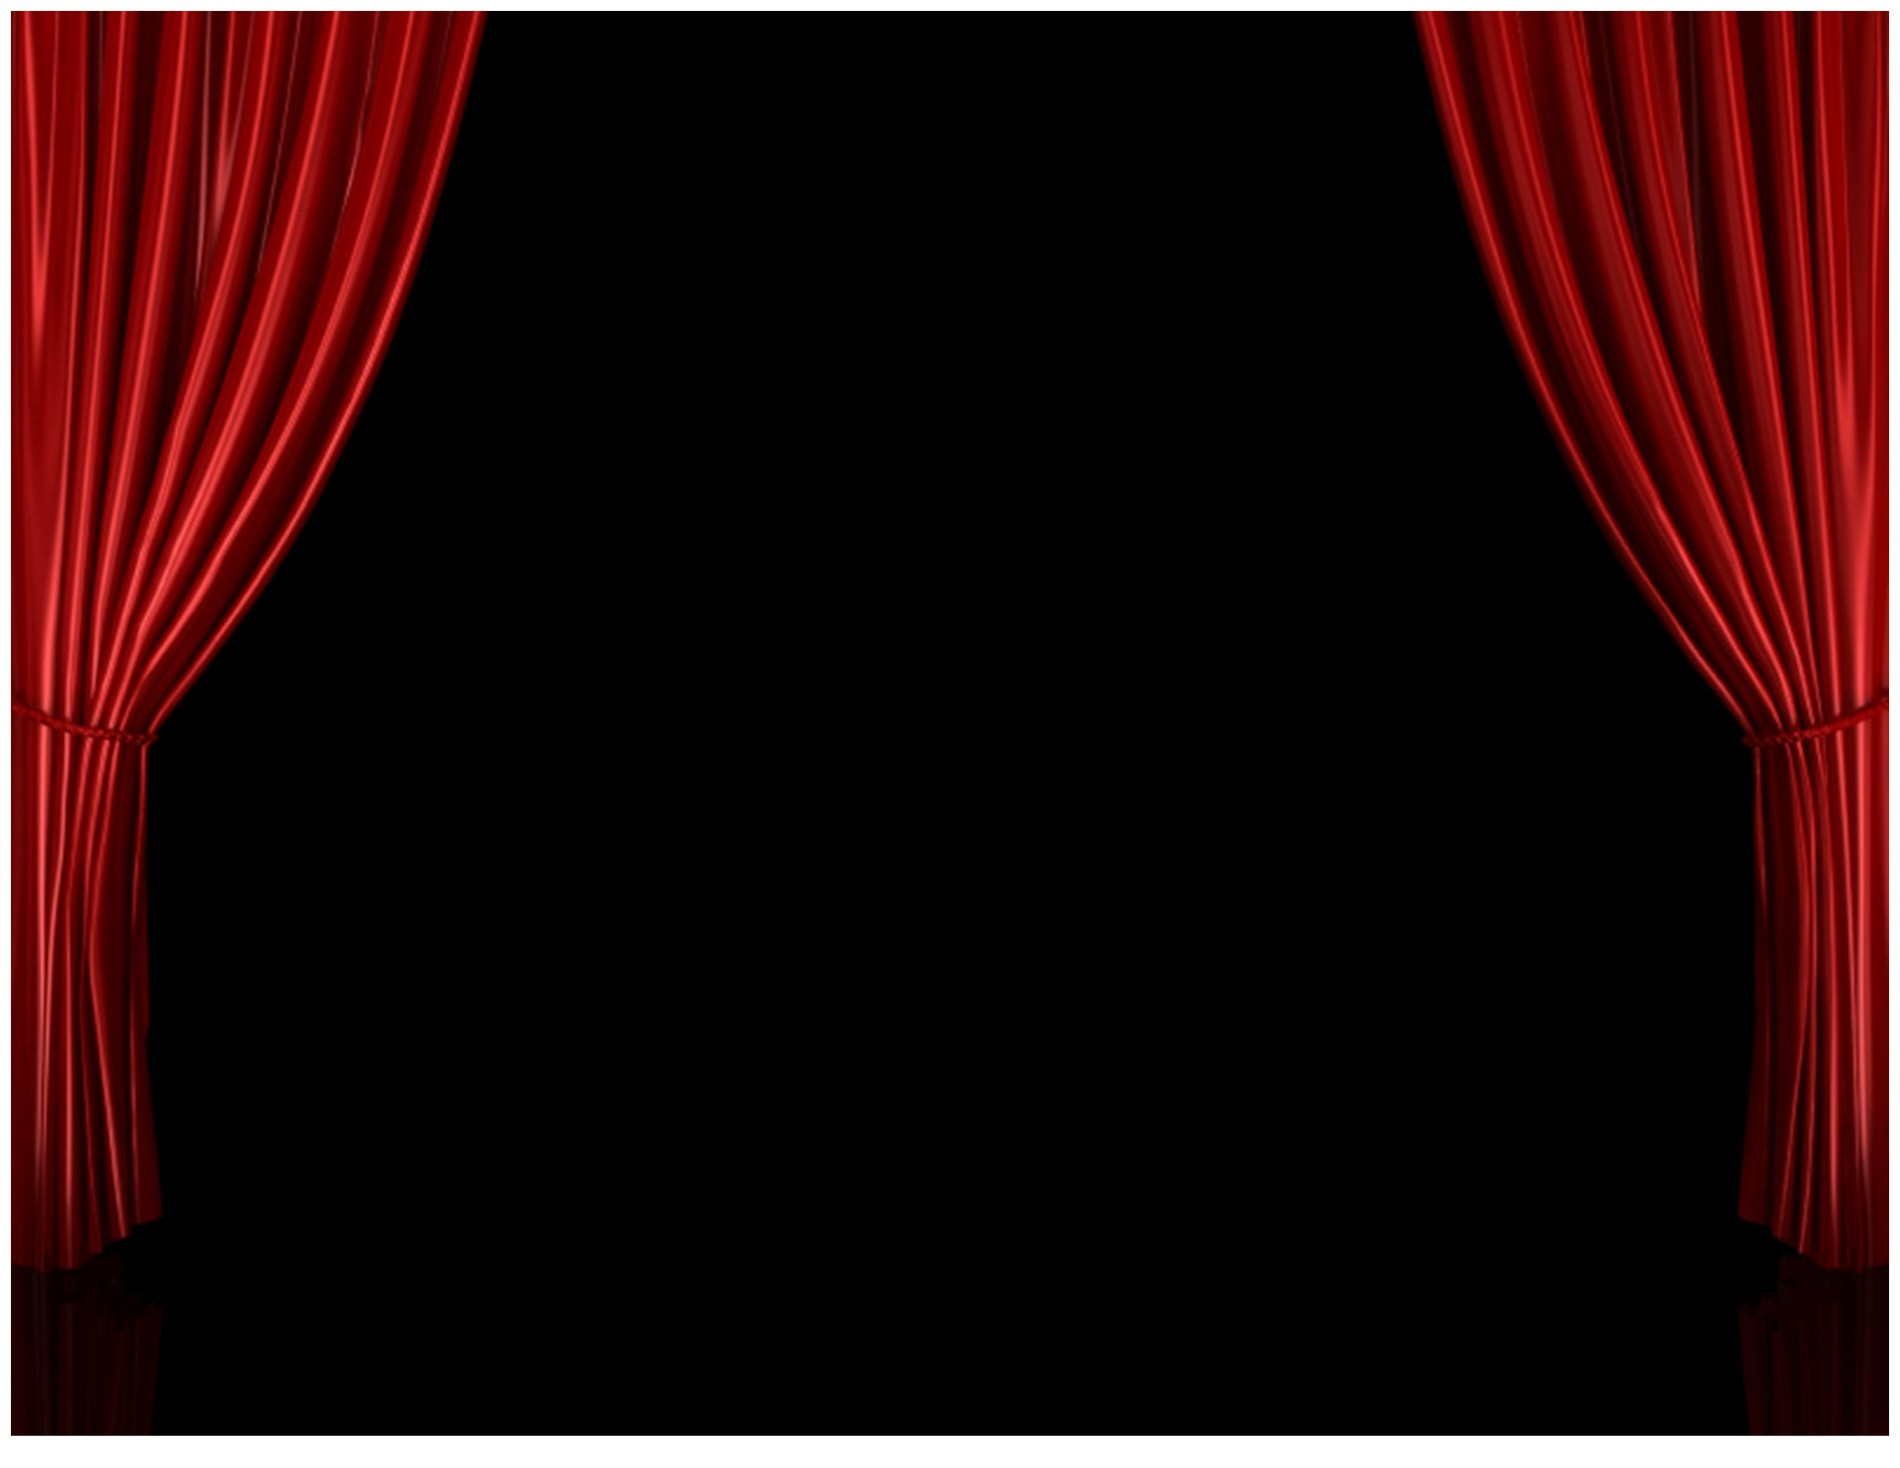 Movie, Theatre, Curation, Stage Png image #35893